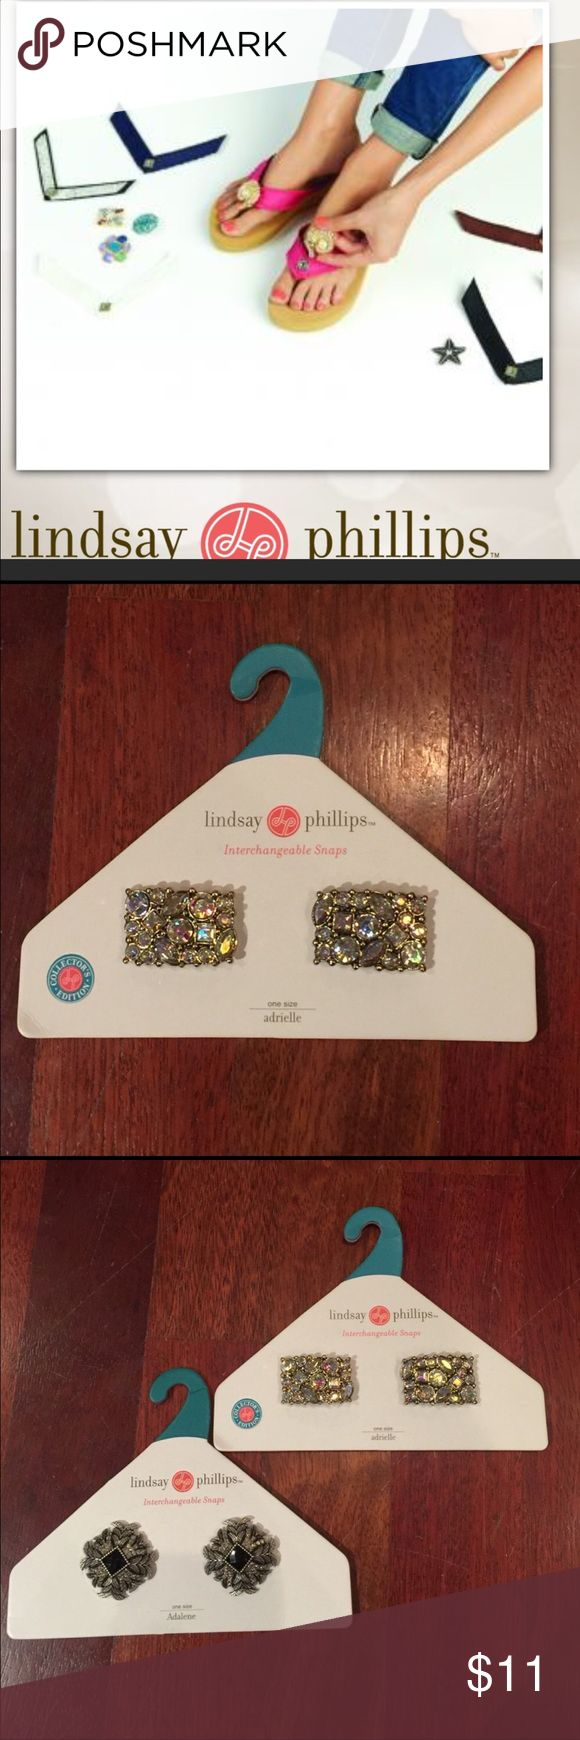 LINDSAY PHILLIPS DECORATIVE 👠👡 ATTACHMENTS NEW:  Change the look of your Lindsay Philips shoes. Brand new...also have (2) pictured listed together, with special pricing. Listing within my closet. lindsay phillips Accessories